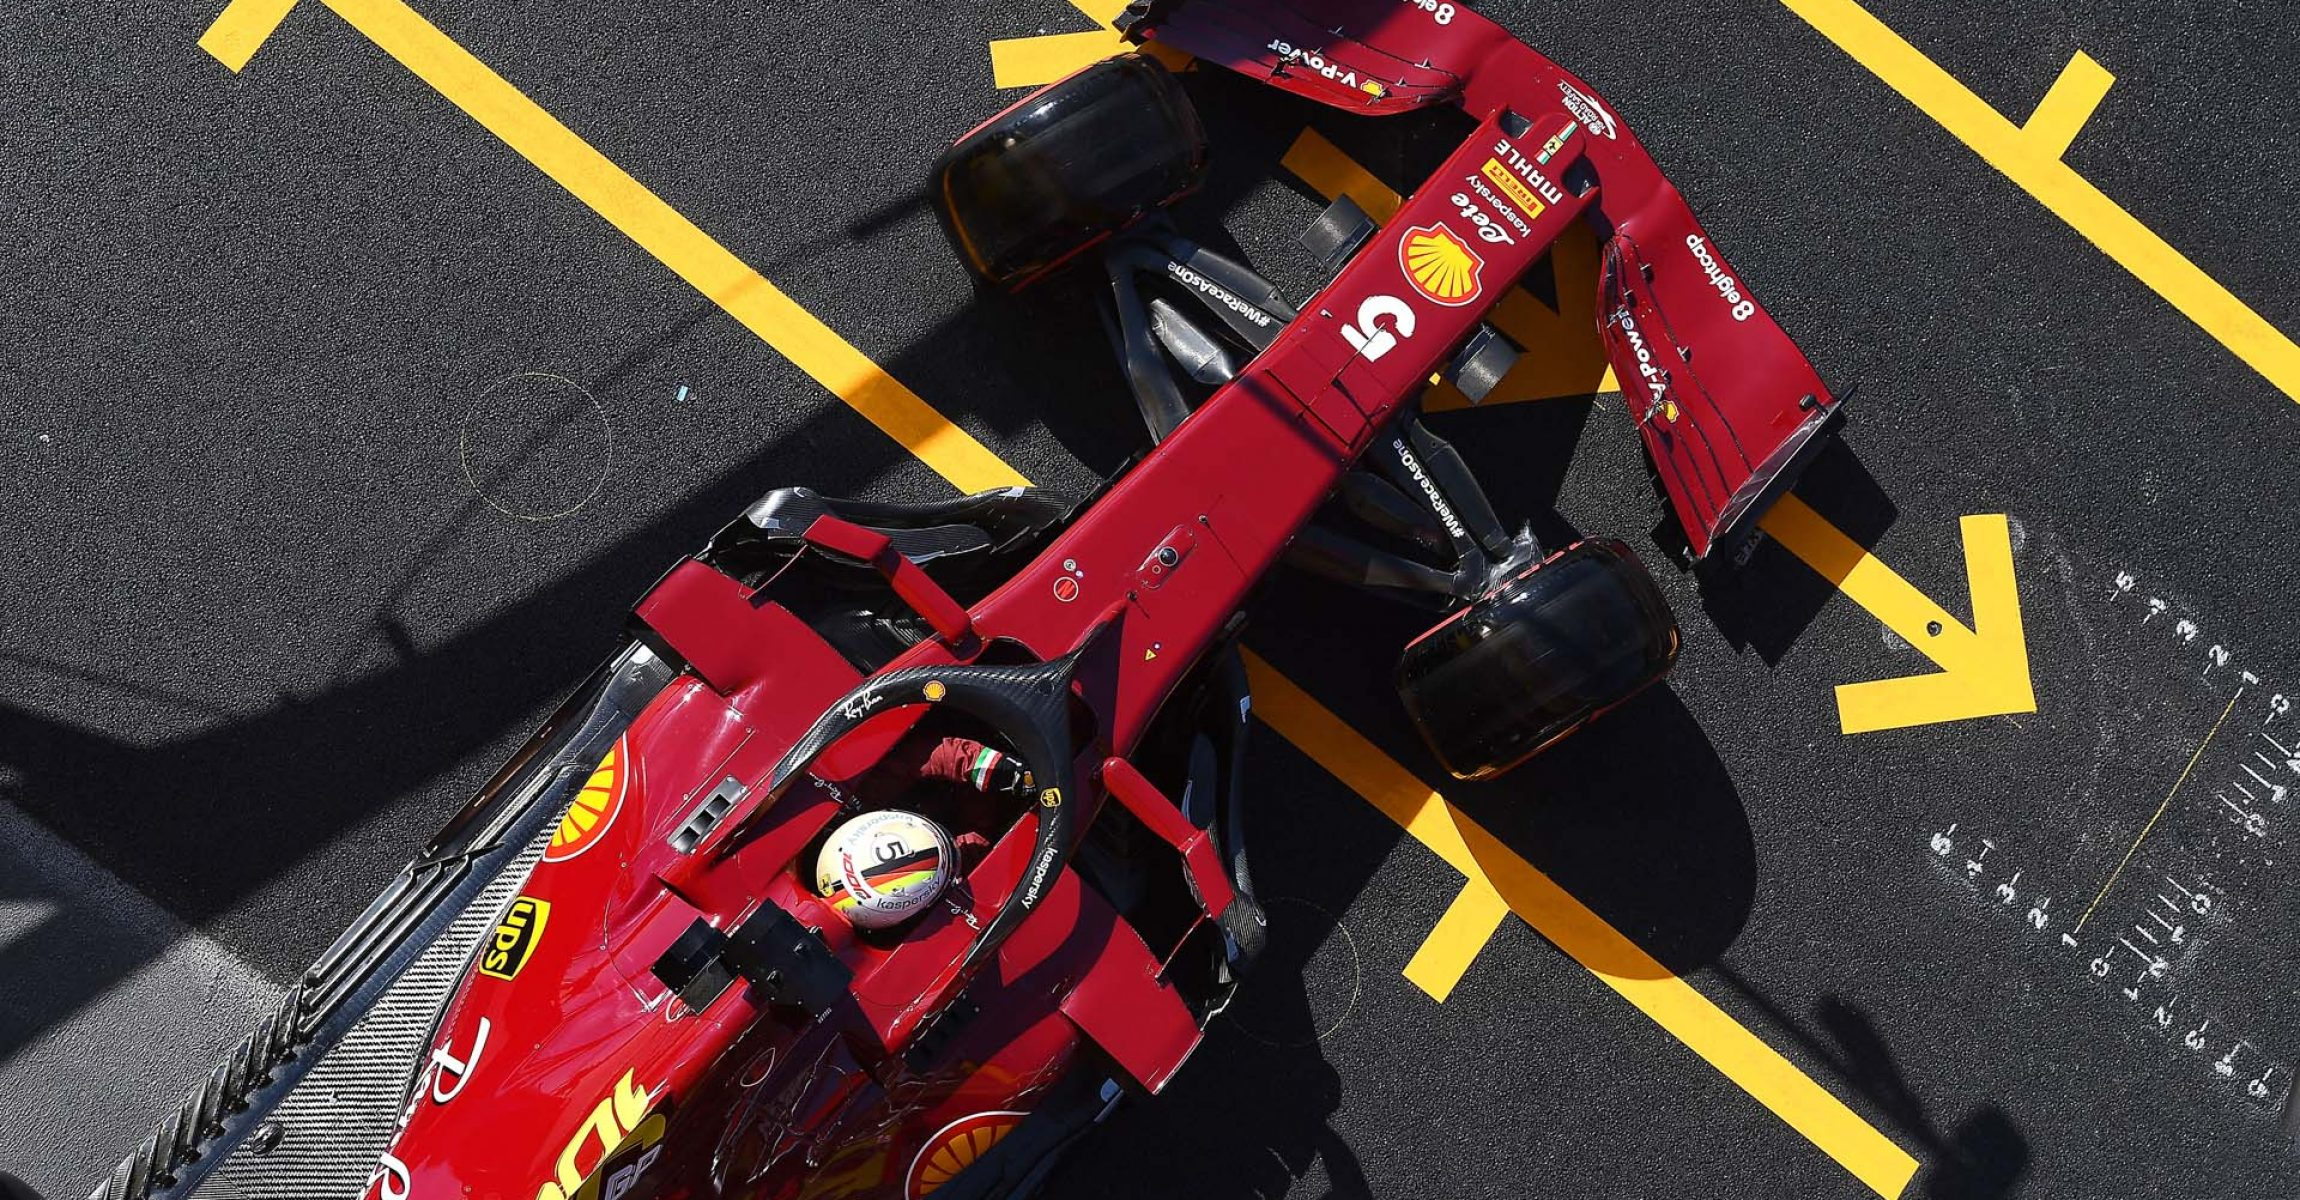 GP TOSCANA FERRARI 1000 F1/2020 -  SABATO 12/09/2020   credit: @Scuderia Ferrari Press Office Sebastian Vettel